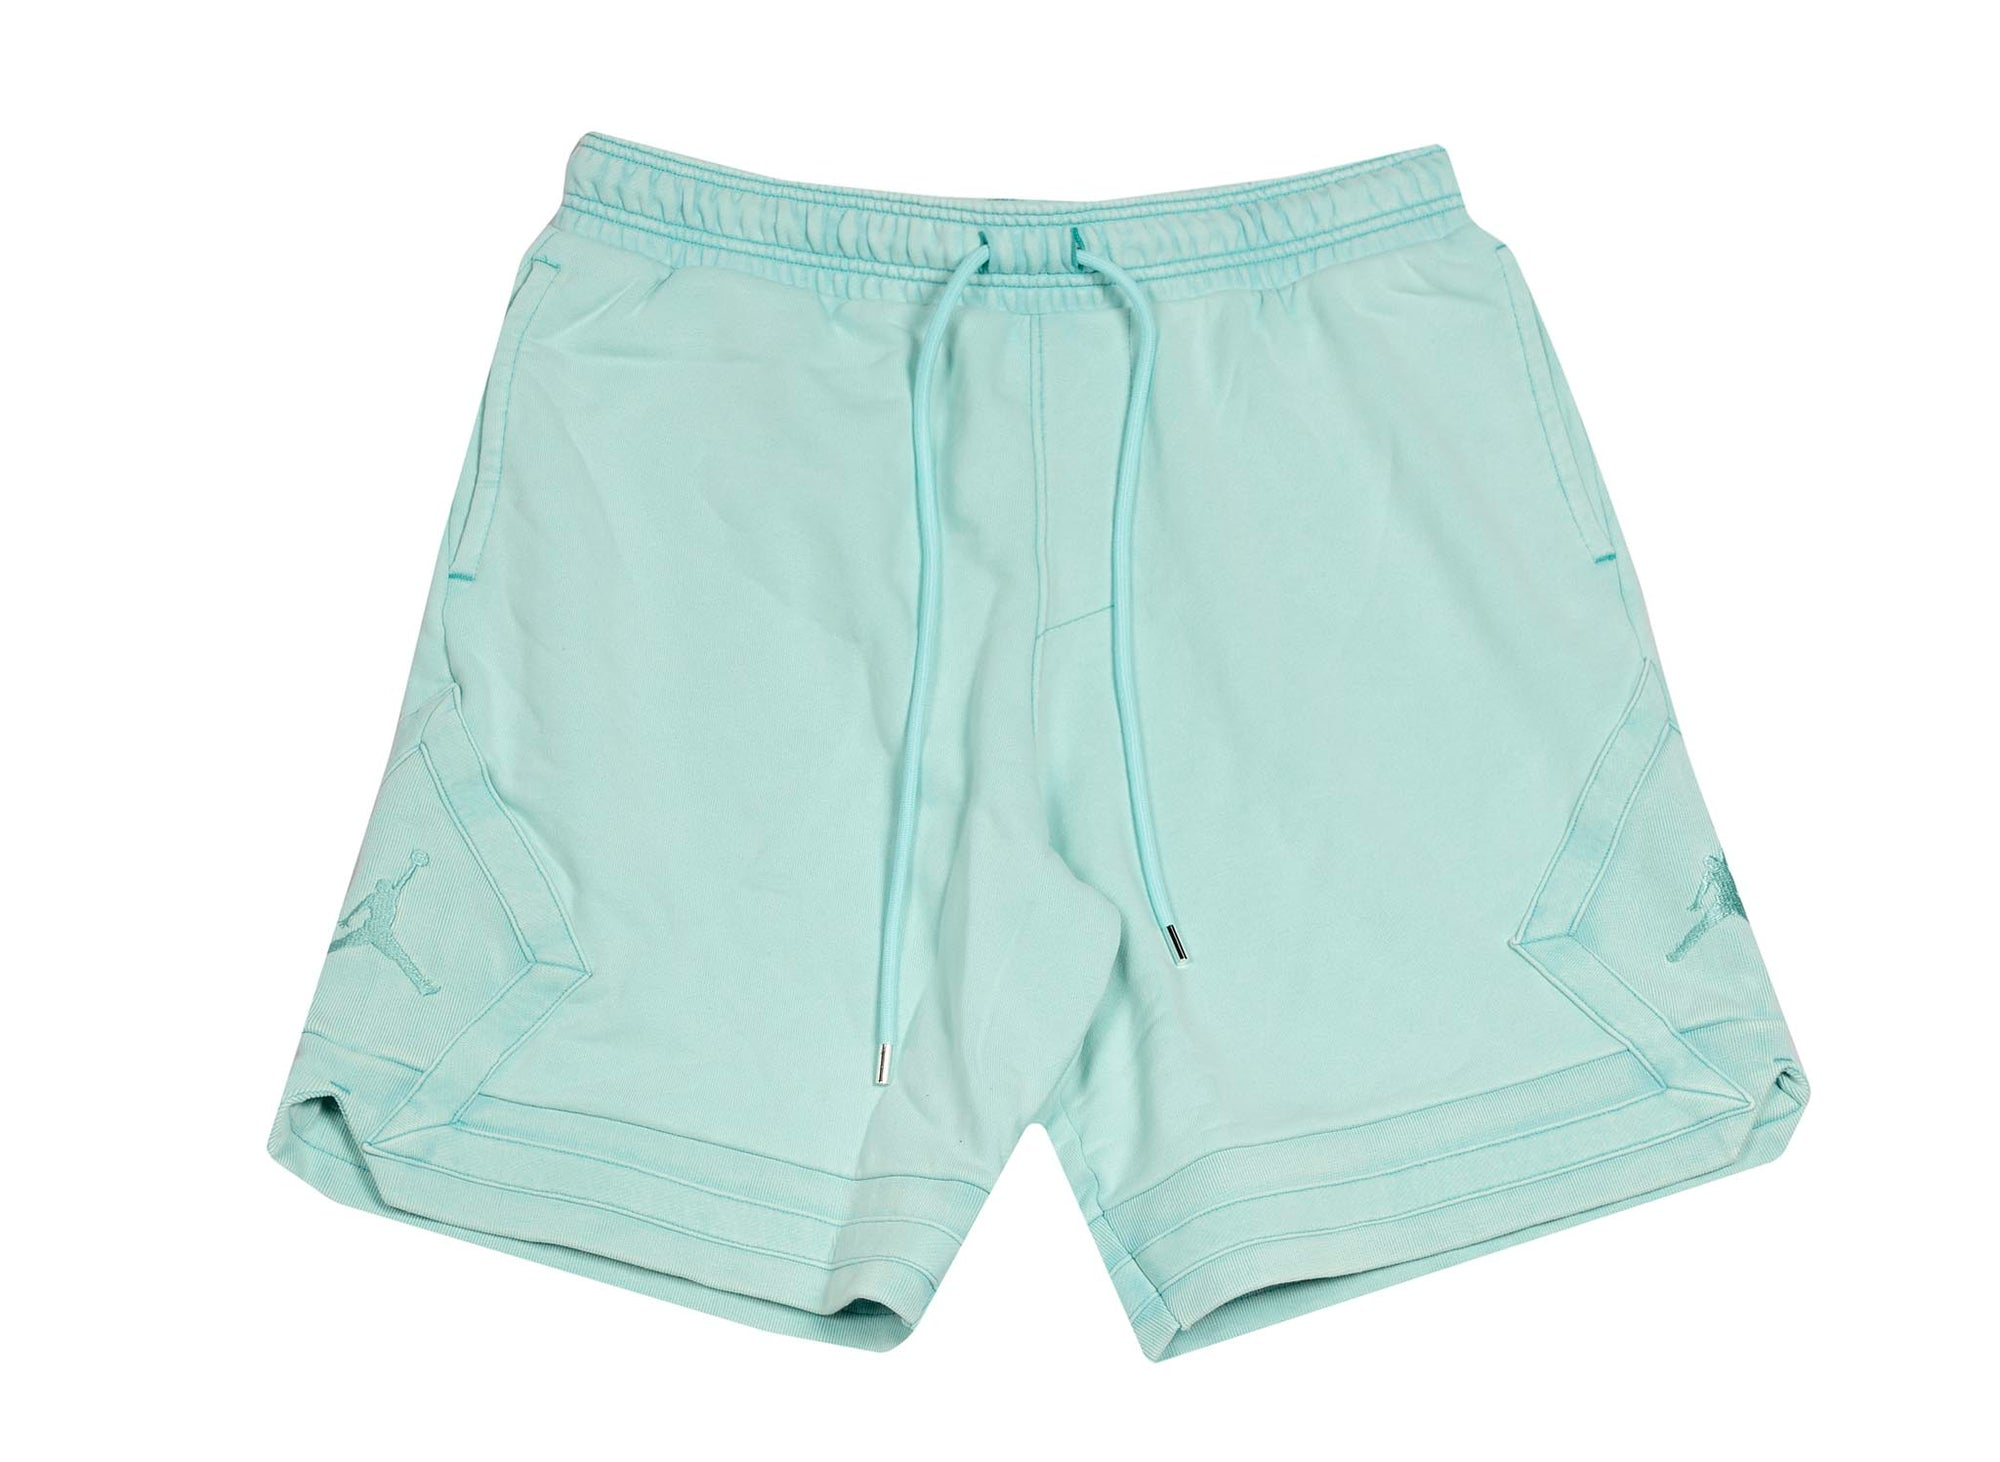 M J WINGS WASH FLC SHORT LIGHT AQUA